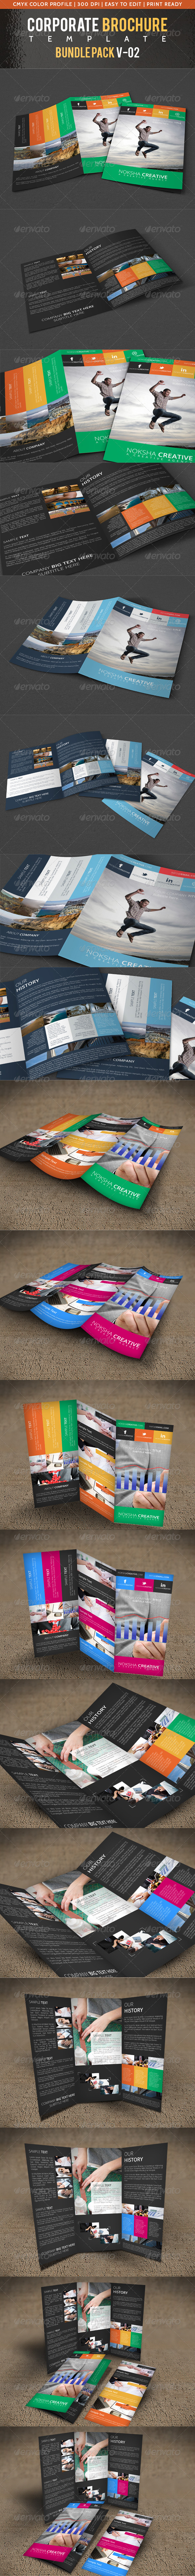 GraphicRiver Corporate Brochure Bundle Pack V-02 5586307